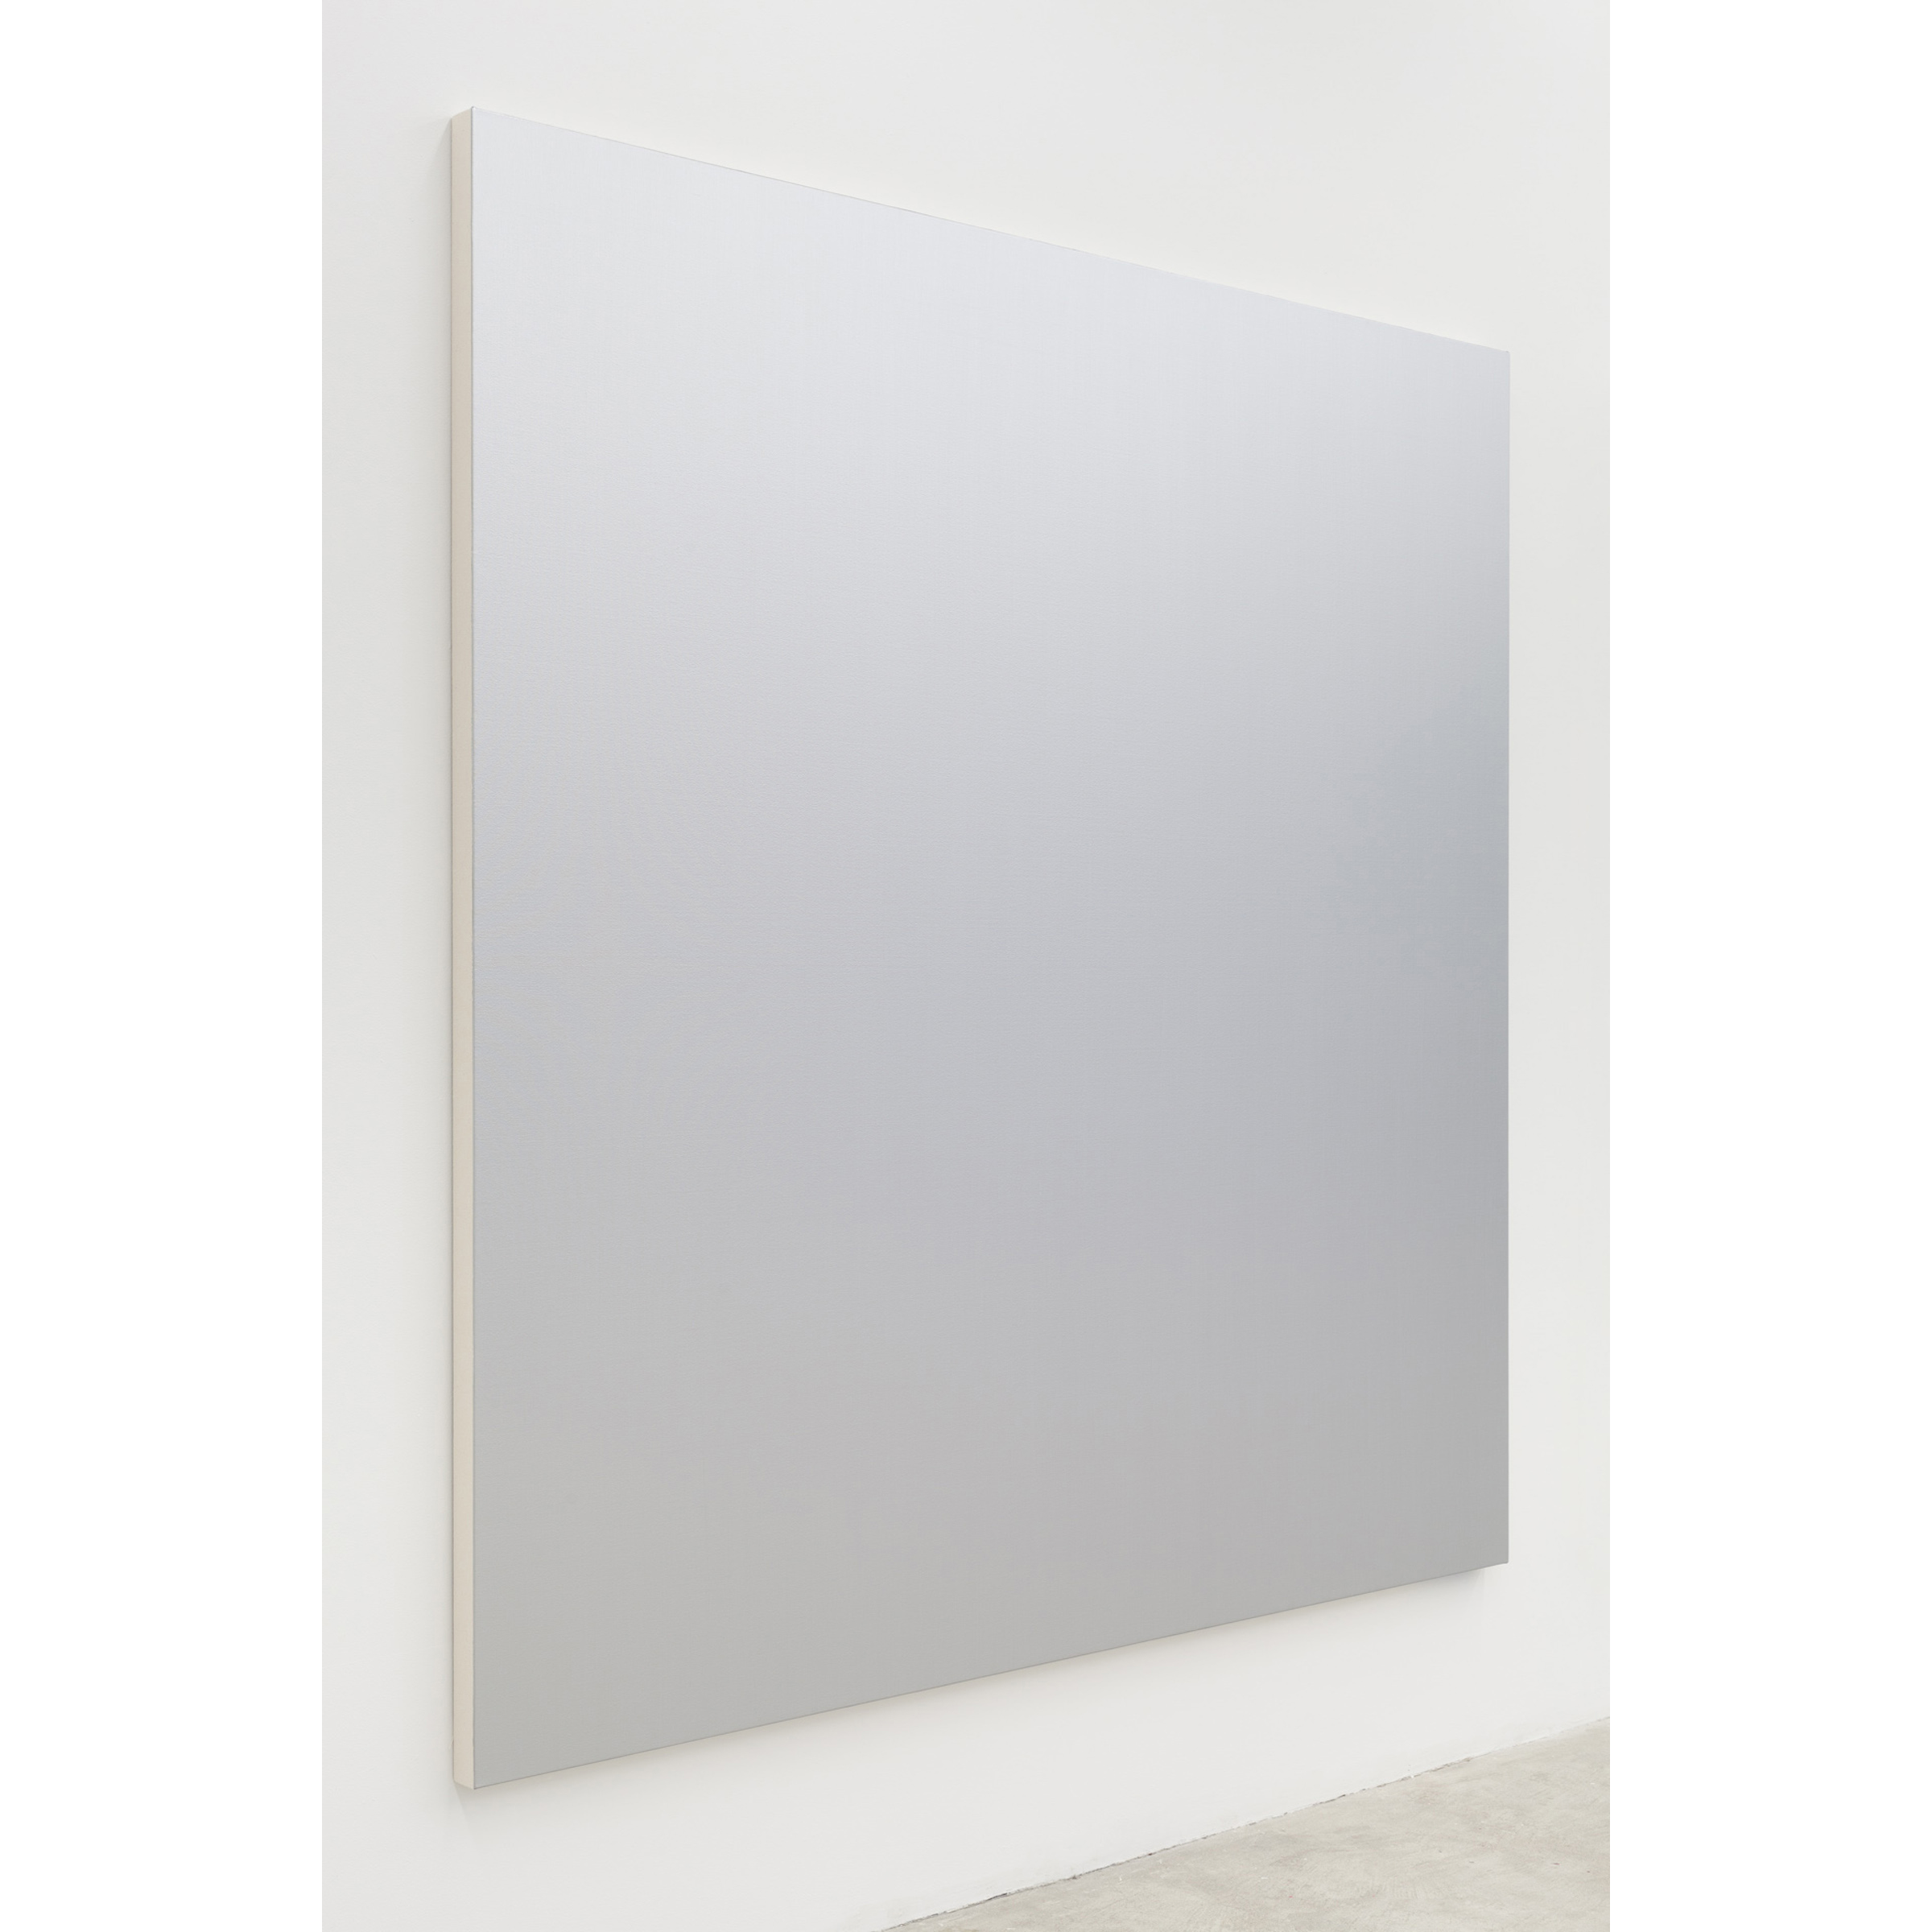 Henry Codax, Untitled (Silver) , 2014,acrylic on canvas,84 x 84 in